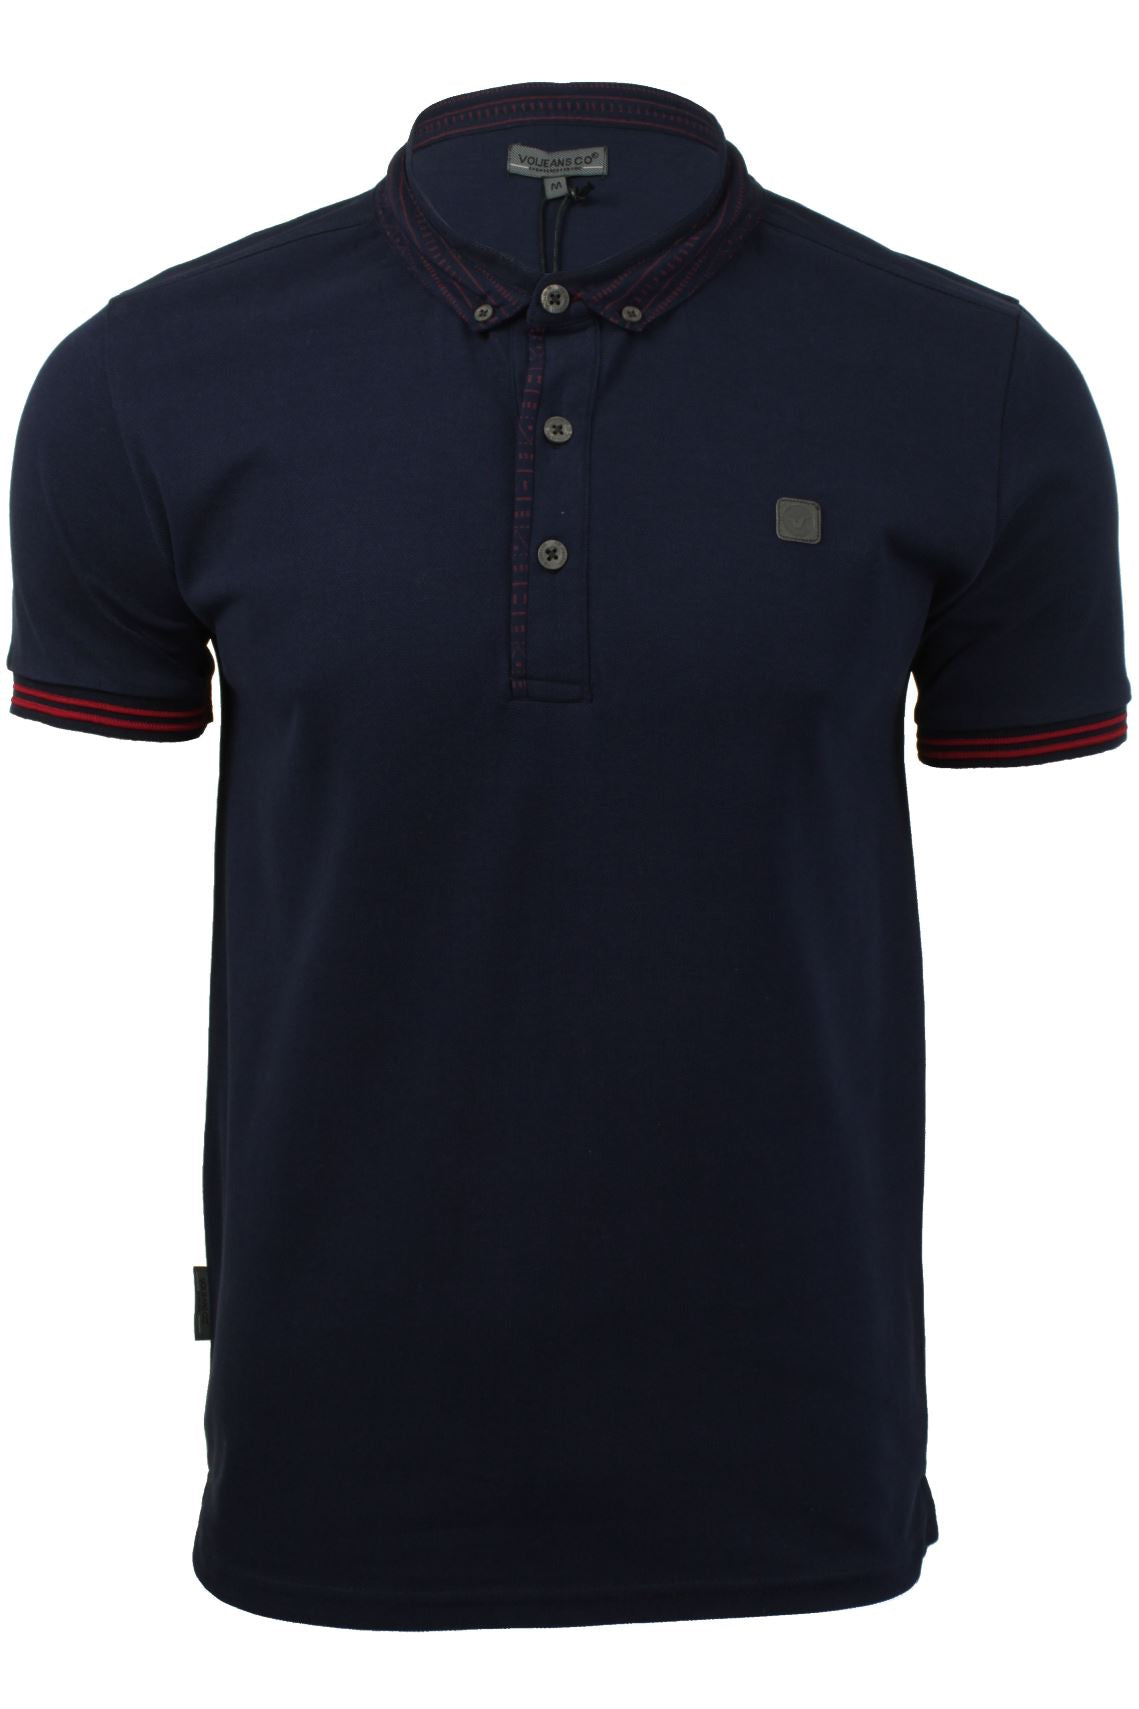 Mens Polo T-Shirt by Voi Jeans 'Winters'-2